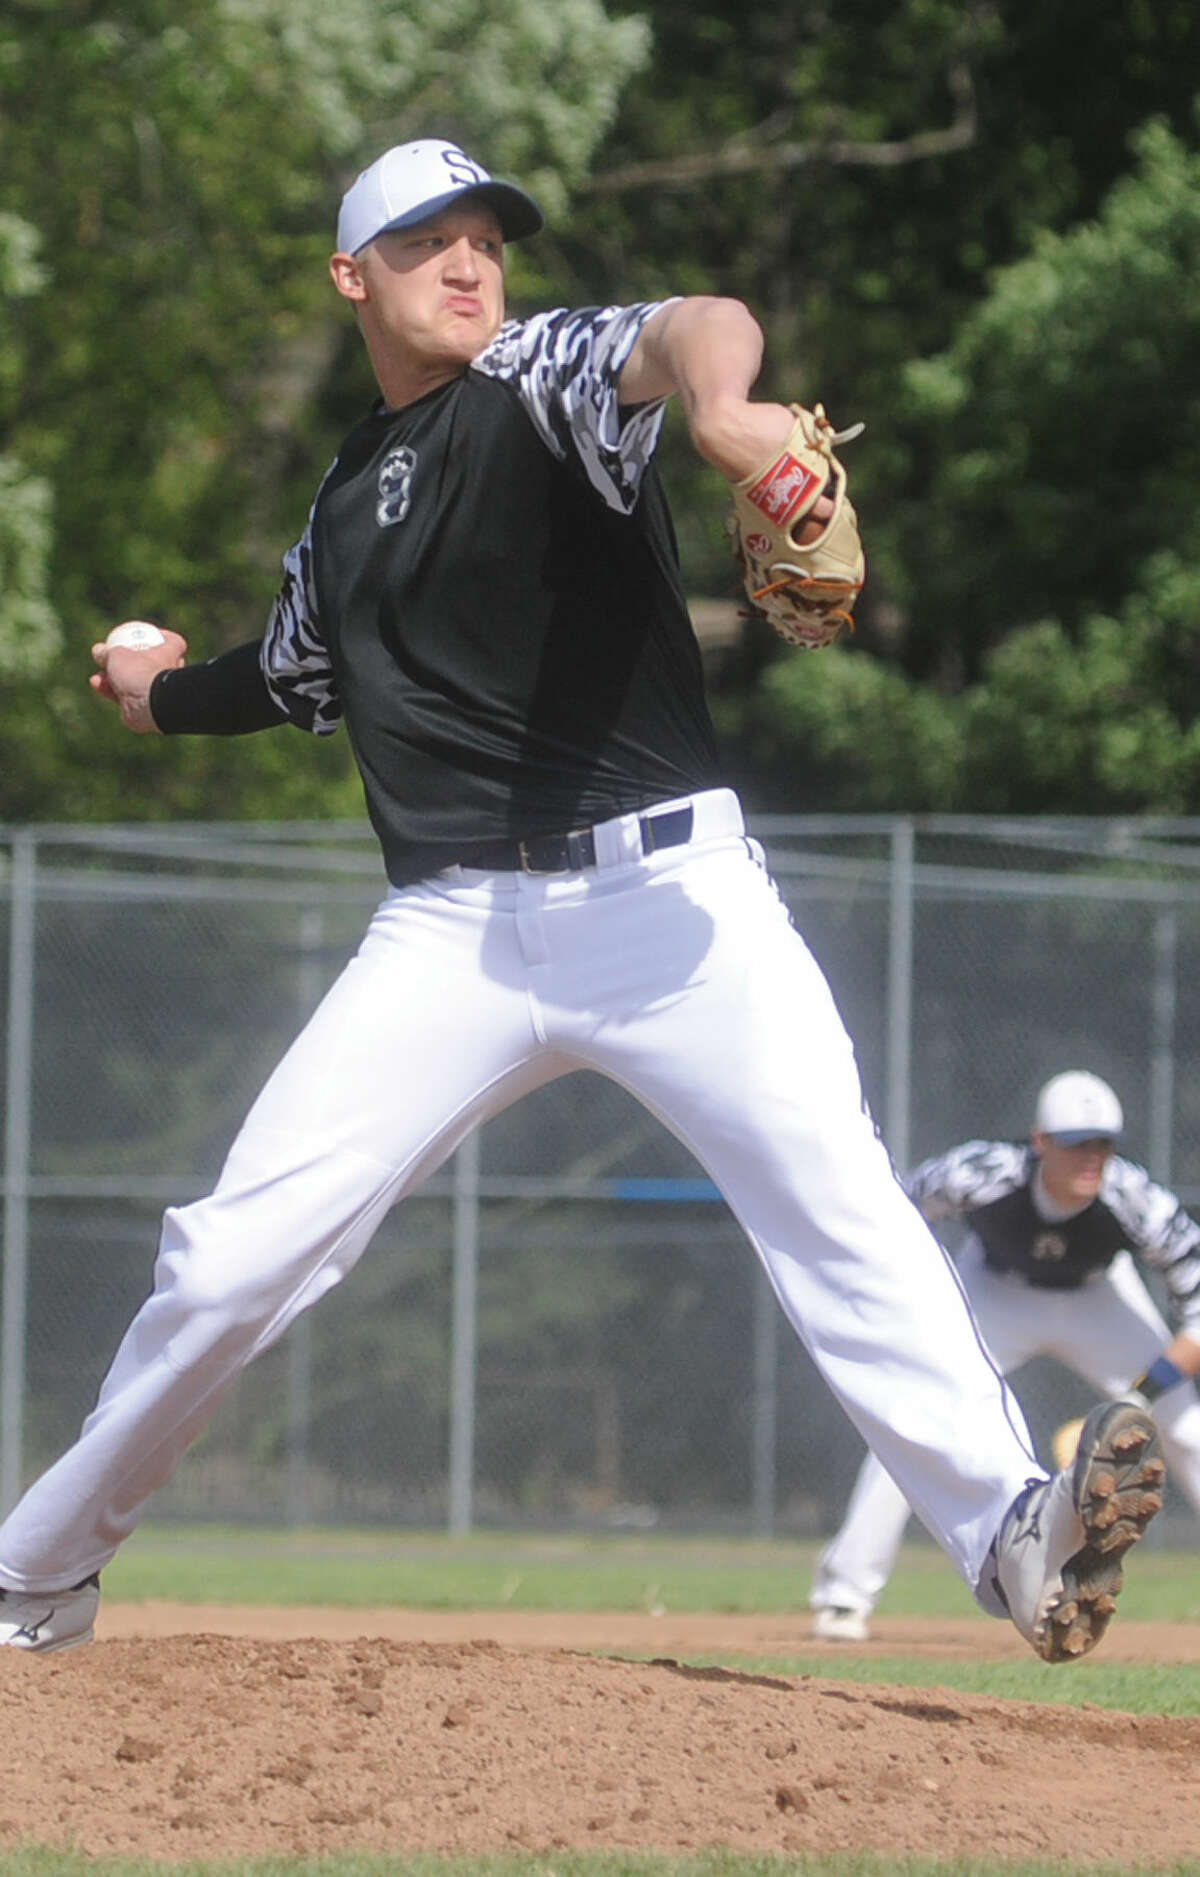 Staples pitcher Ryan Fitton fired a one-hit 9-0 shutout over Norwalk in FCIACbaseball action at Malmquist Field on Wednesday afternoon. (Hour photo/Matthew Vinci)